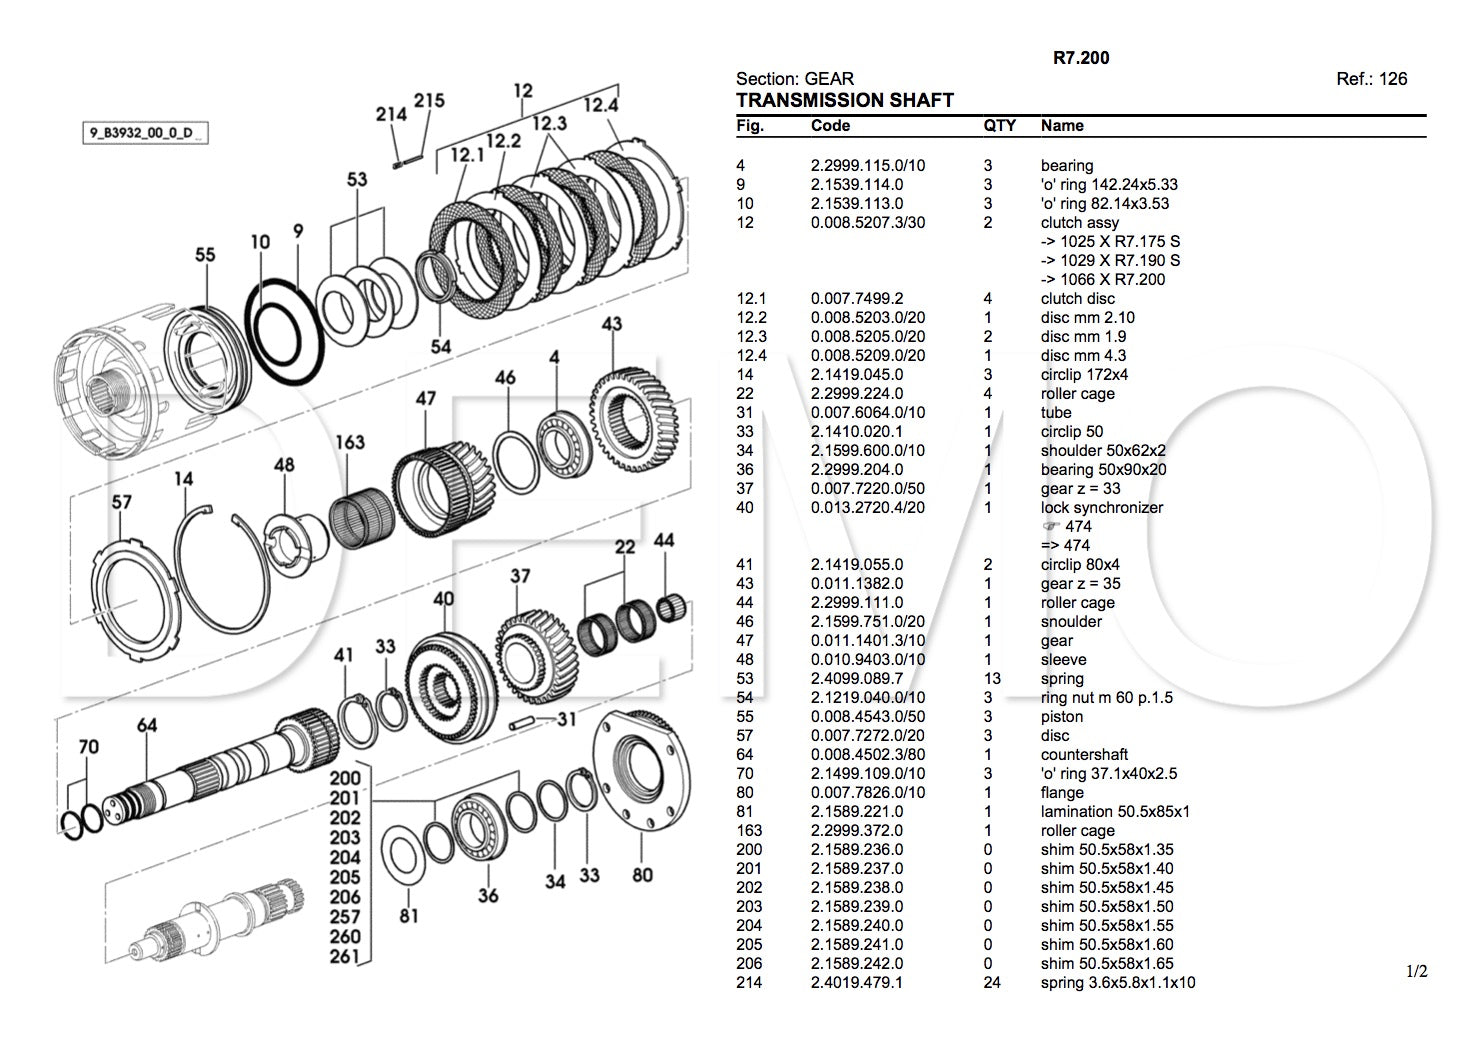 Lamborghini 674-70N Parts Catalogue, PDF Manual, Parts